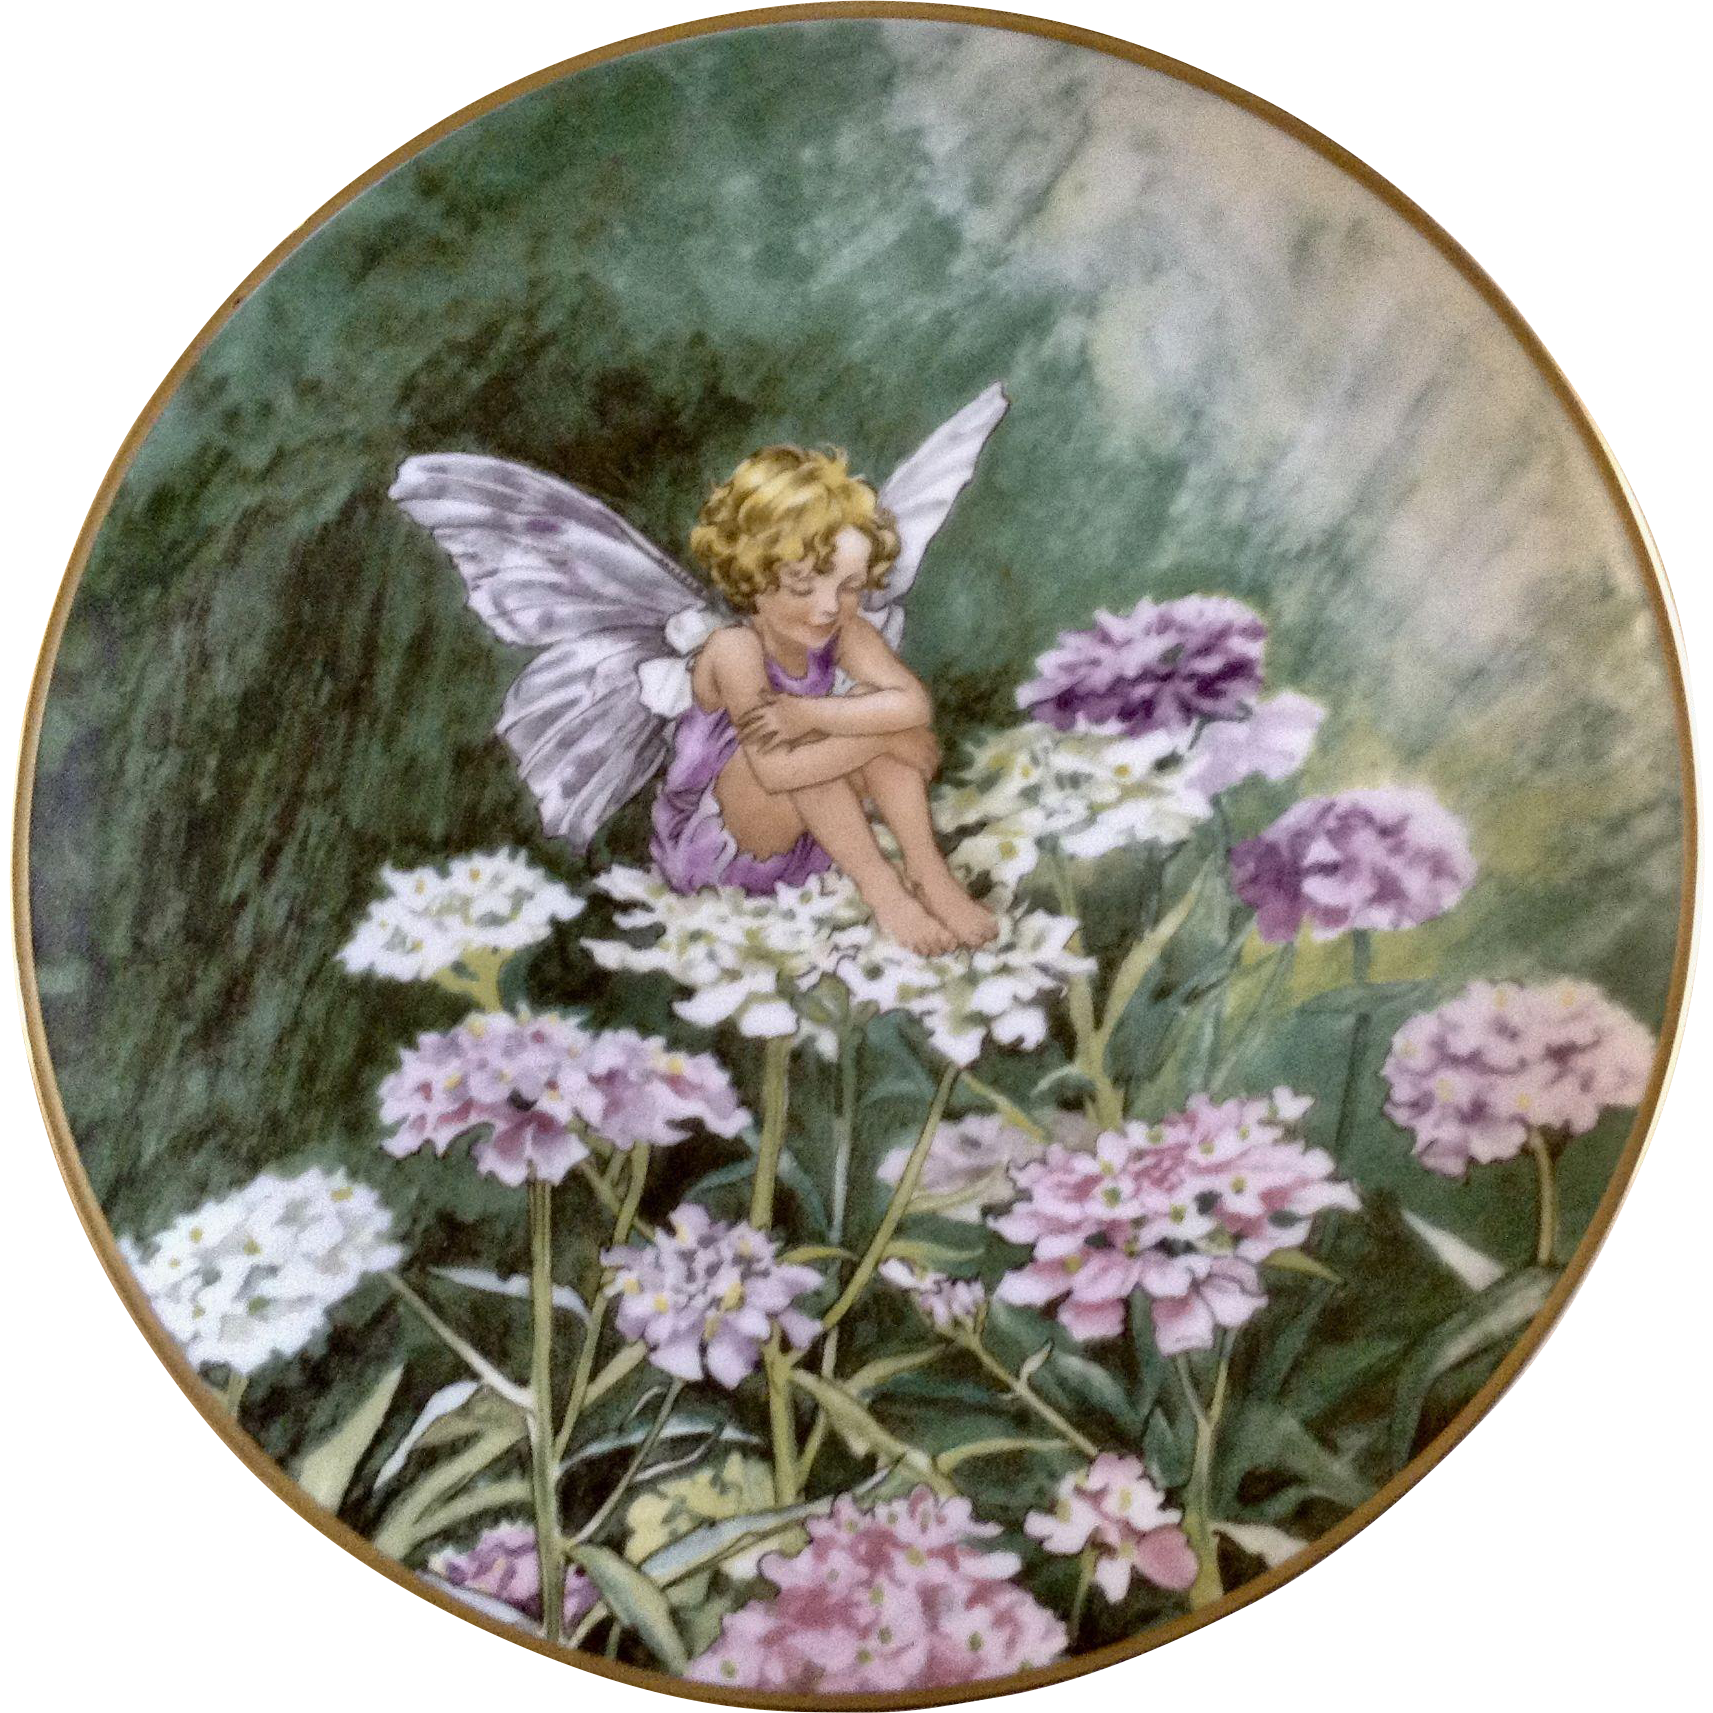 1980 The Candytuft Fairy Collectors Plate Flower Fairies By Heinrich H C Villeroy Boch Germany Discontinued Flower Fairies Flower Plates Flowers